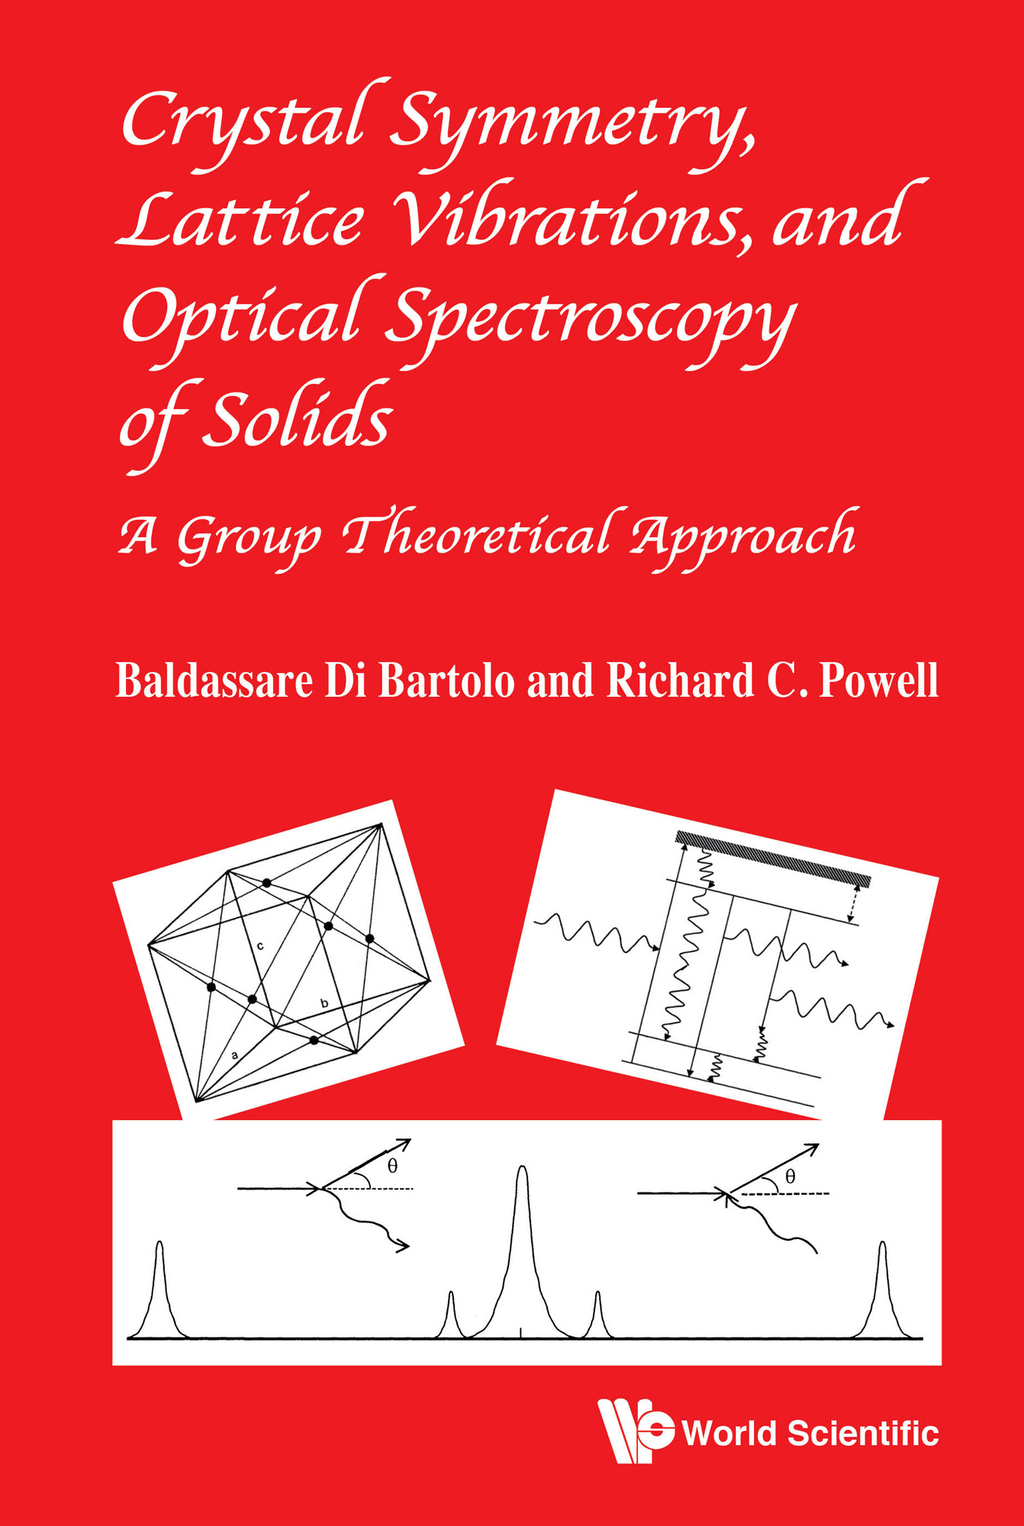 Crystal Symmetry, Lattice Vibrations, And Optical Spectroscopy Of Solids: A Group Theoretical Approach (ebook) eBooks